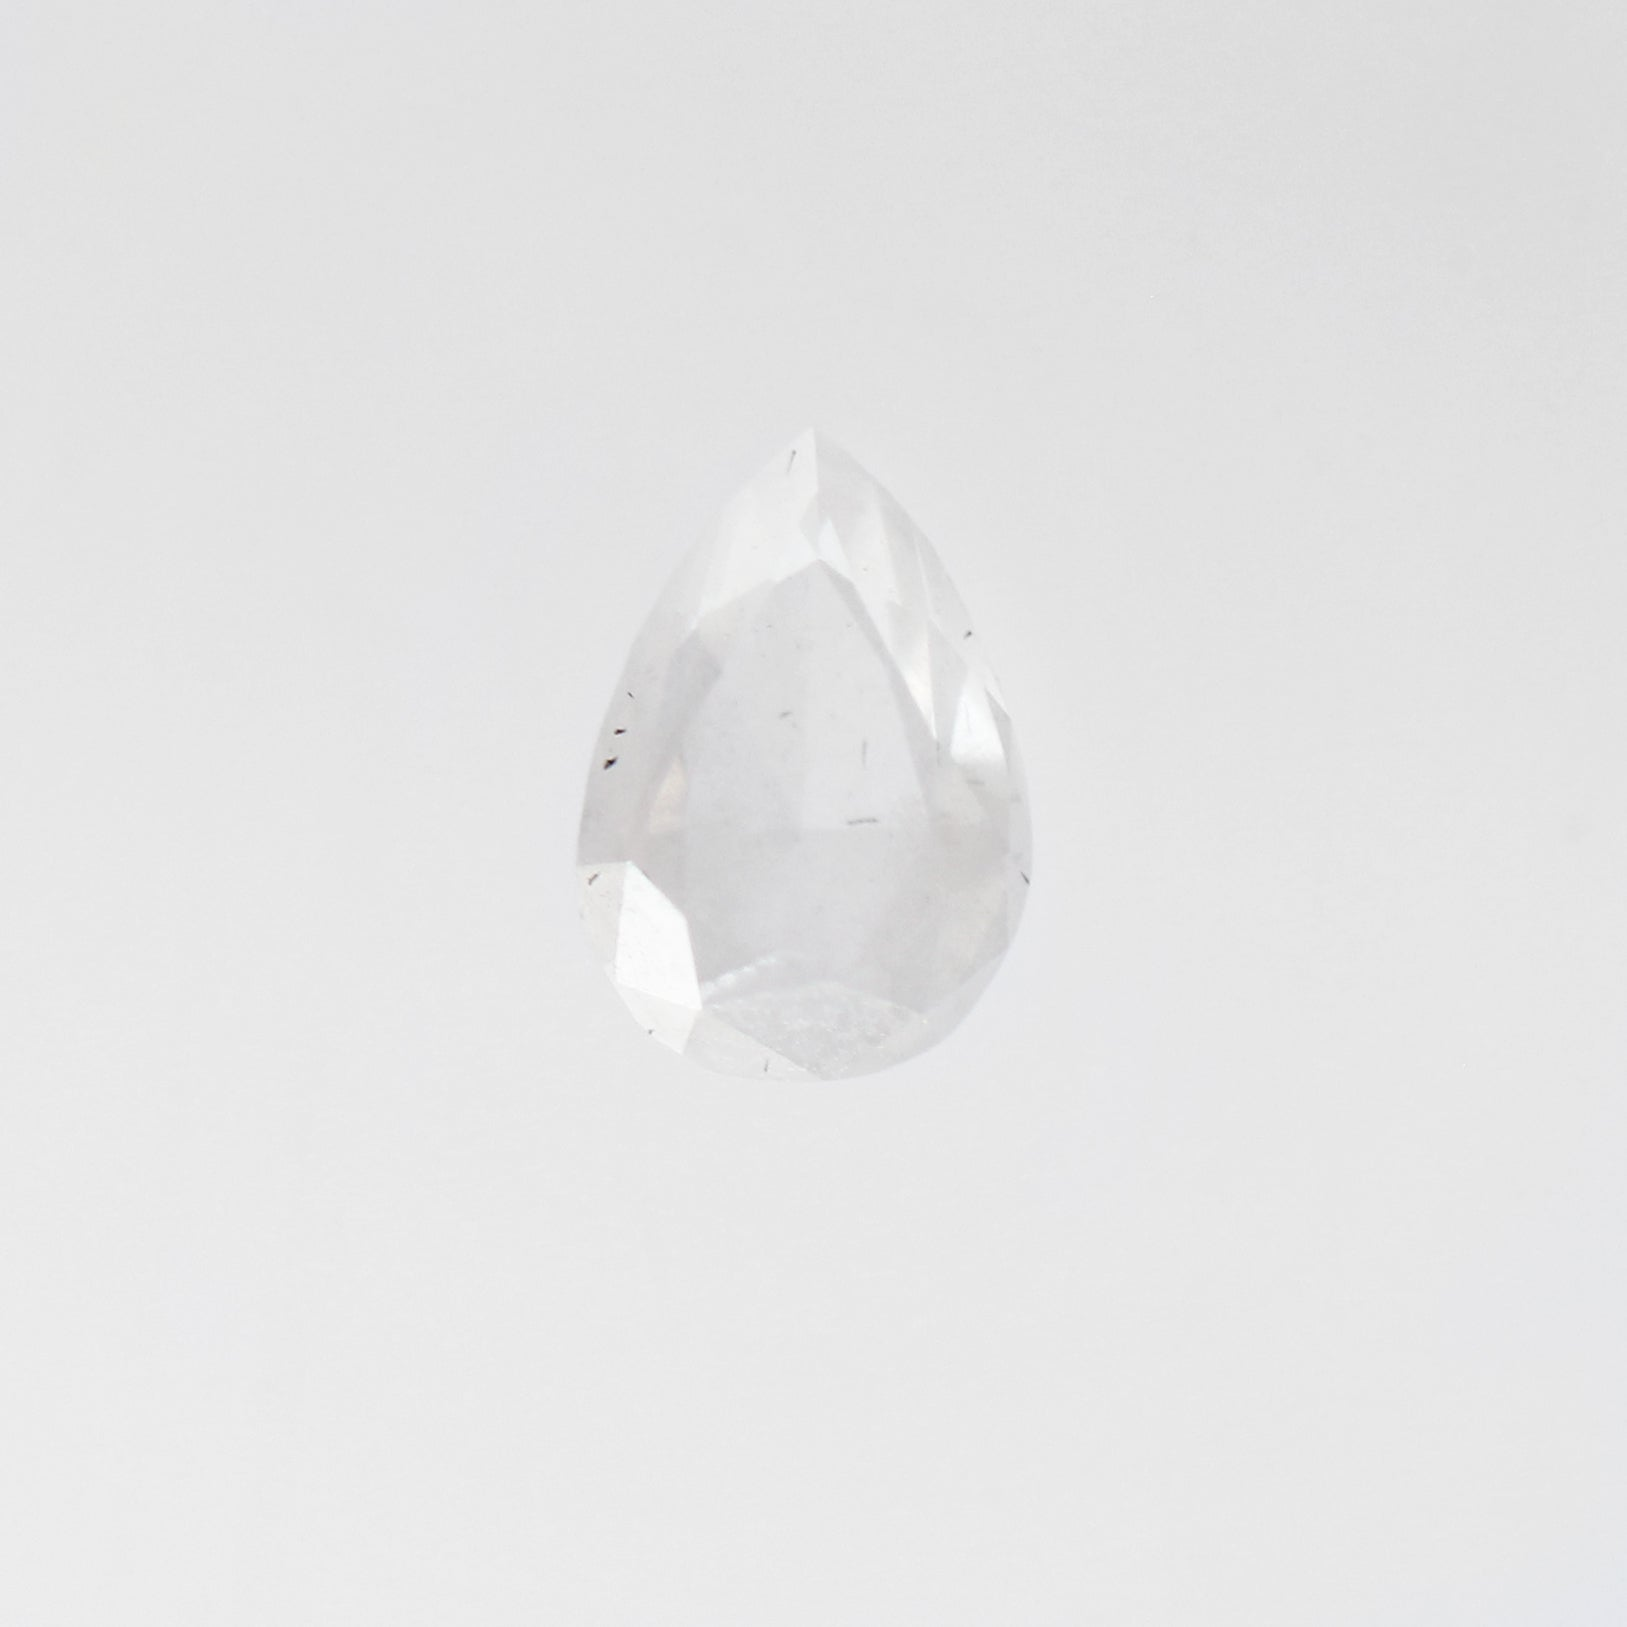 .72 Carat Pear Celestial Diamond-Inventory Code PBWC72 - Celestial Diamonds ® by Midwinter Co.